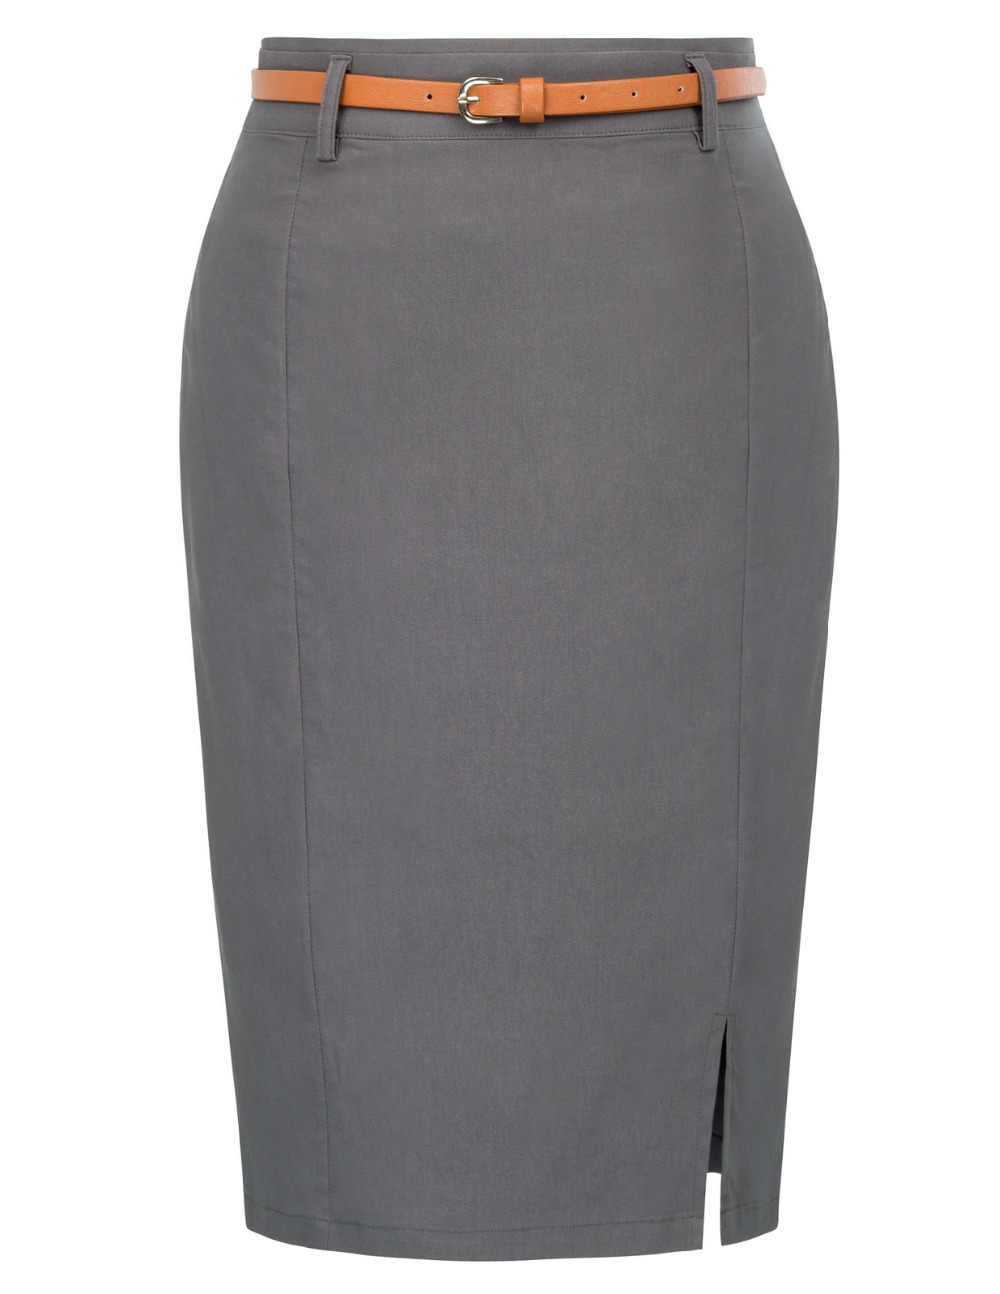 ae29c13064391 Hot Women elegant Solid skirt grey red black Stretch Back Zipper Hip wrap  Bodycon Pencil clasic